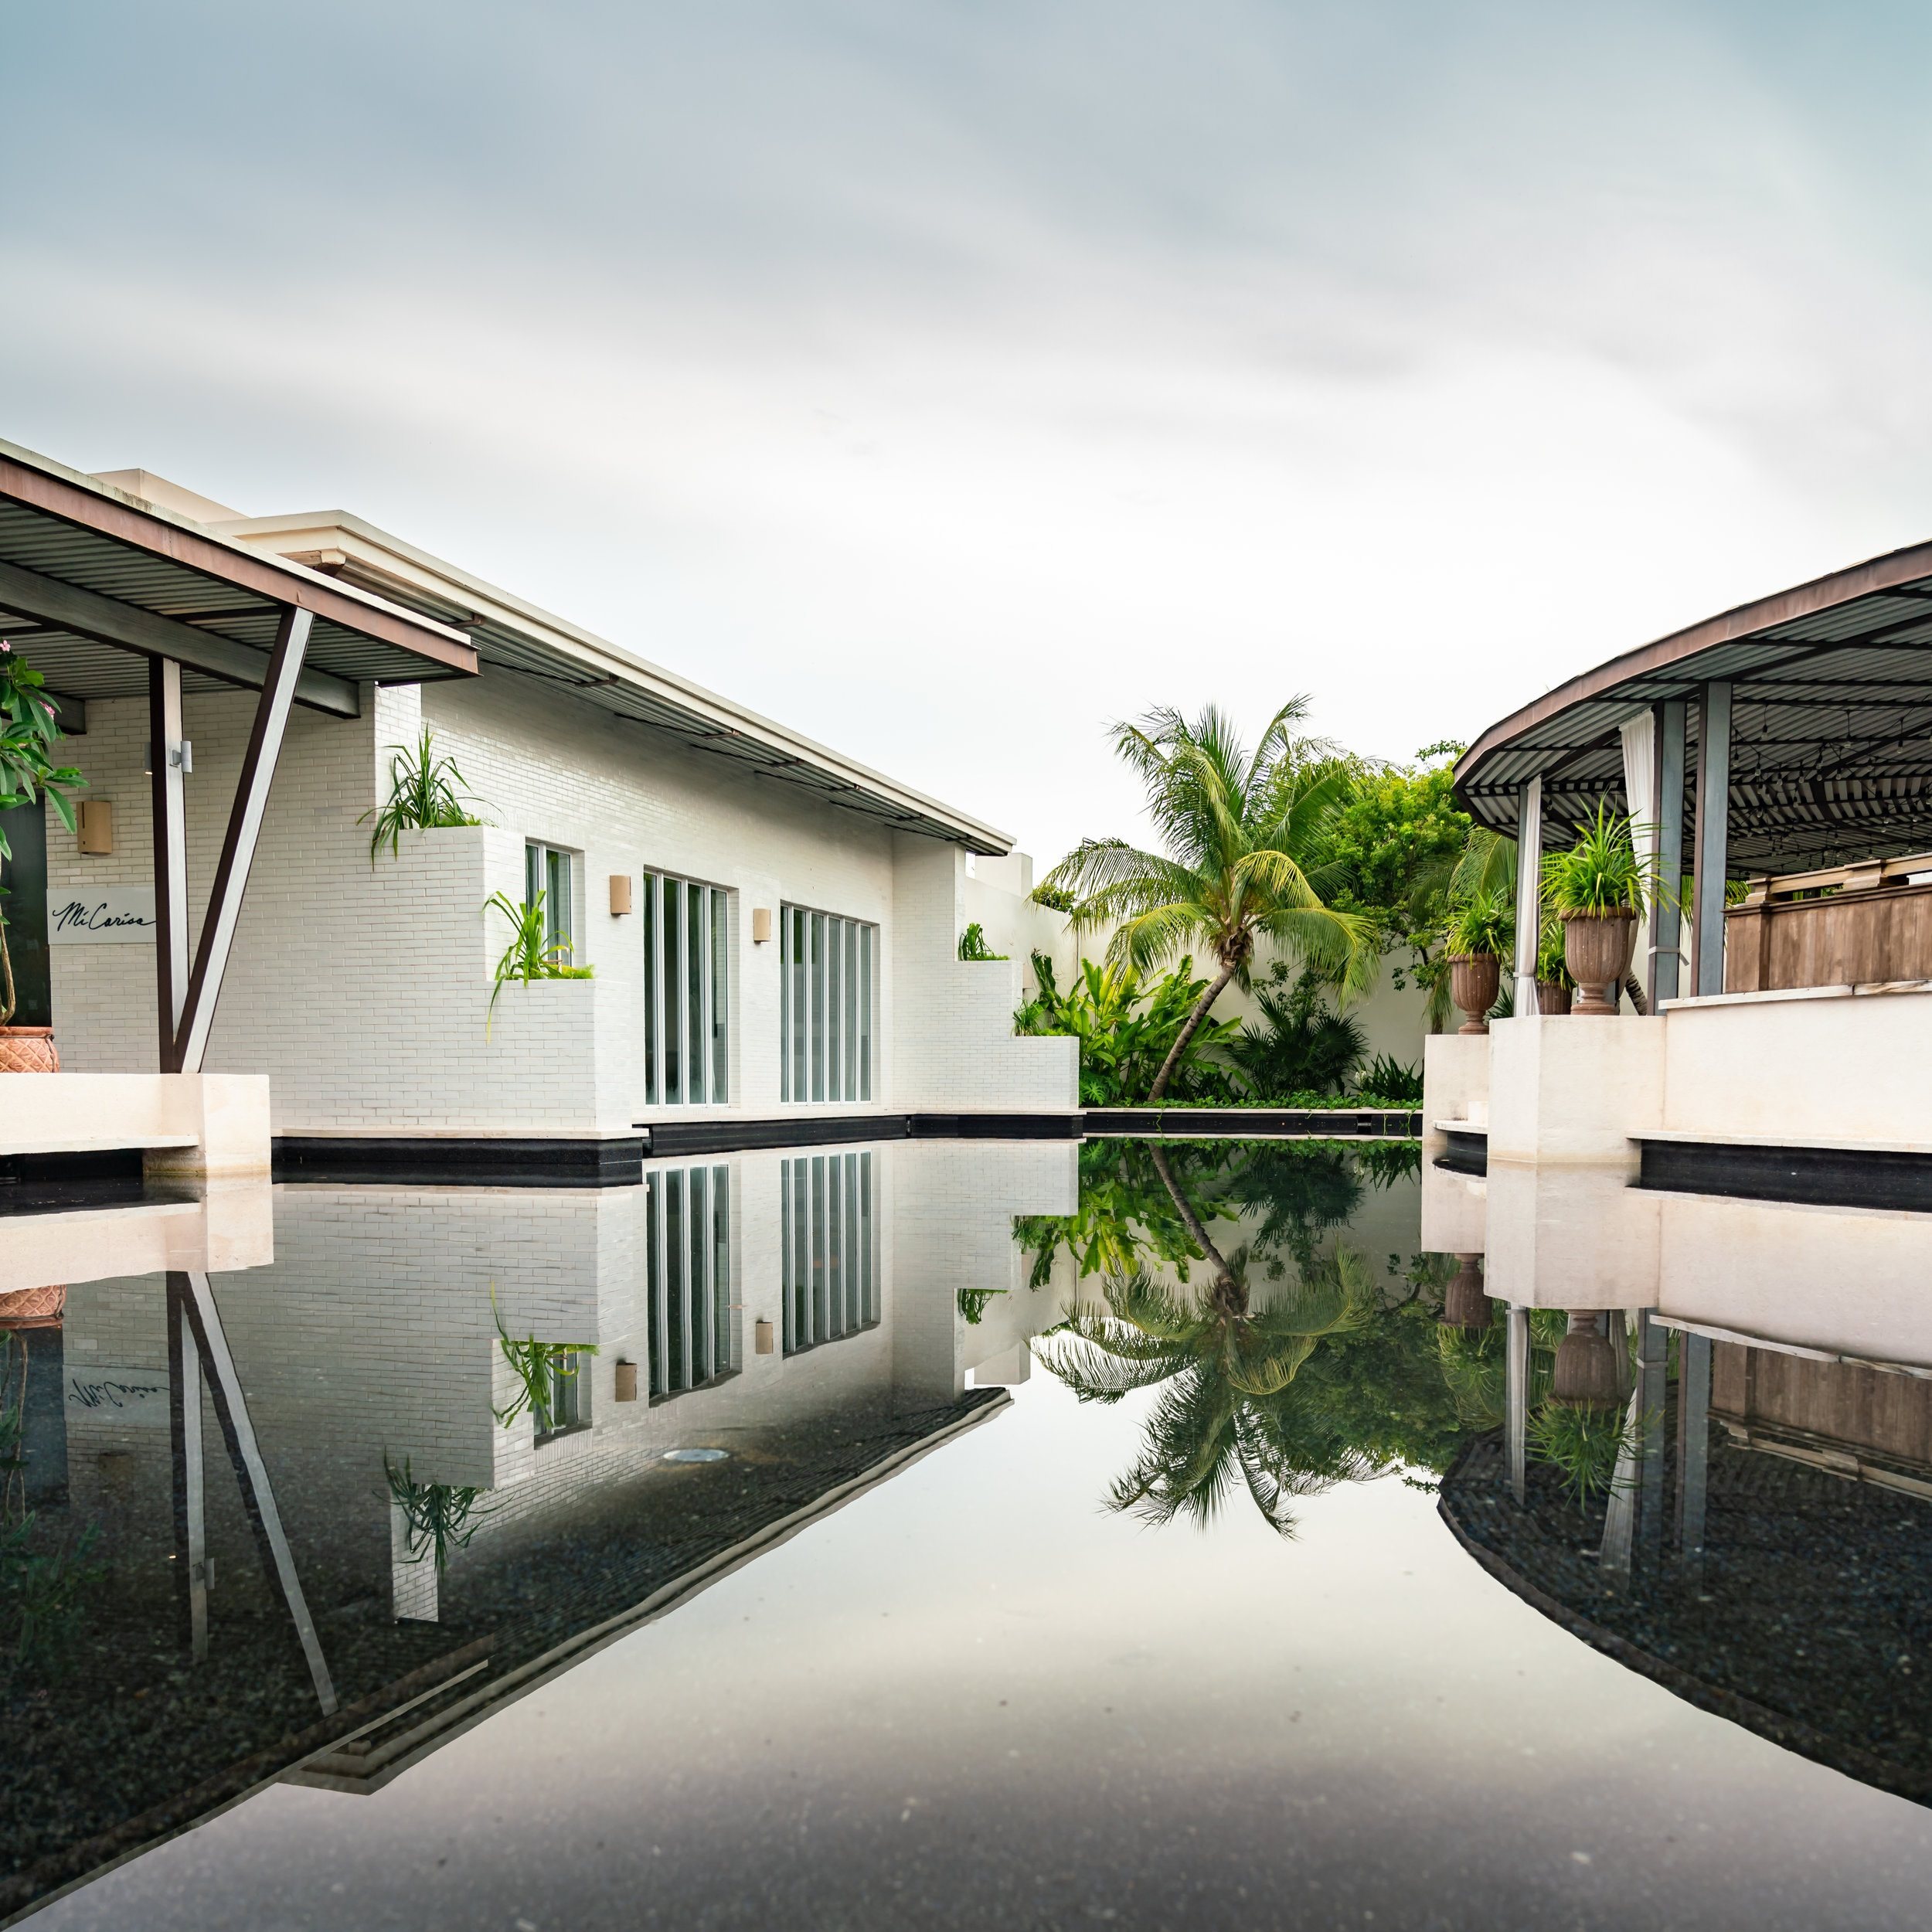 Architecture/Real Estate - Click to make a ripple in the water for more photos.